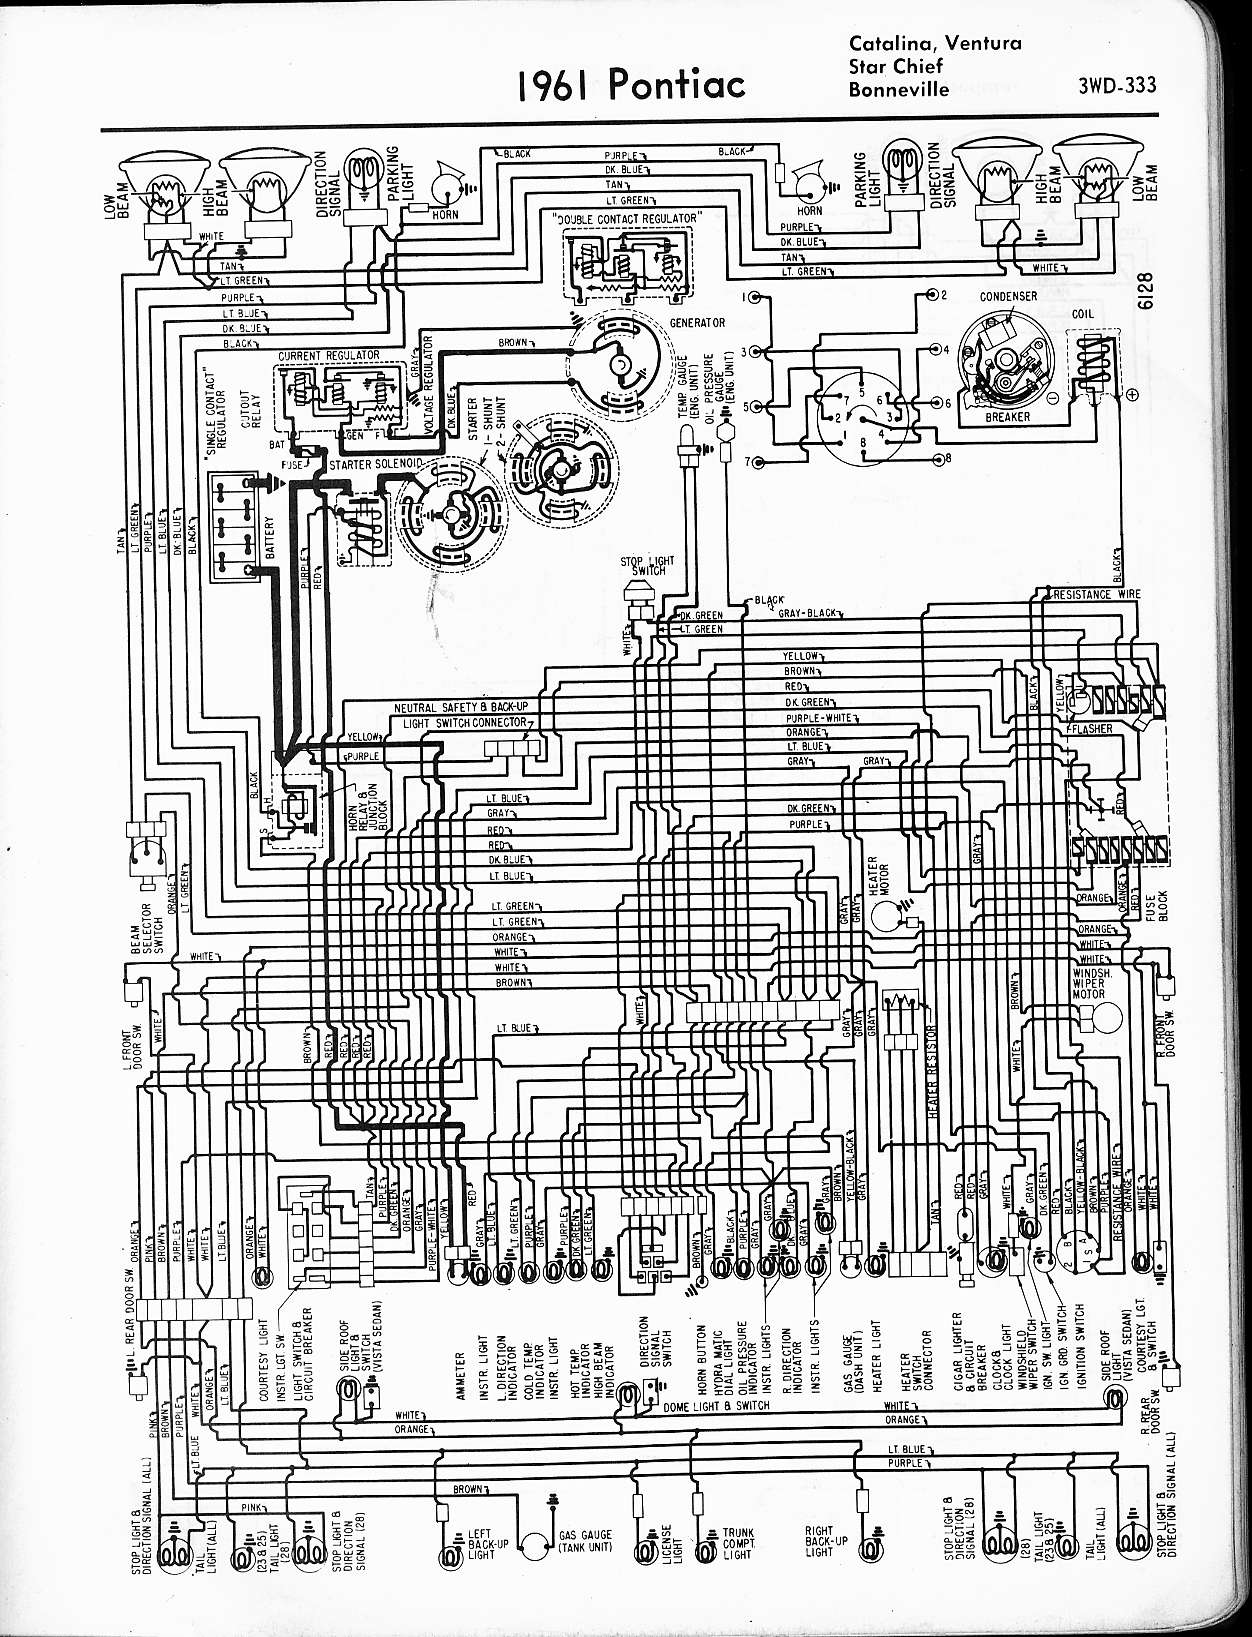 1971 pontiac gto fuse box layout wiring diagrams u2022 rh laurafinlay co uk  1968 Pontiac GTO